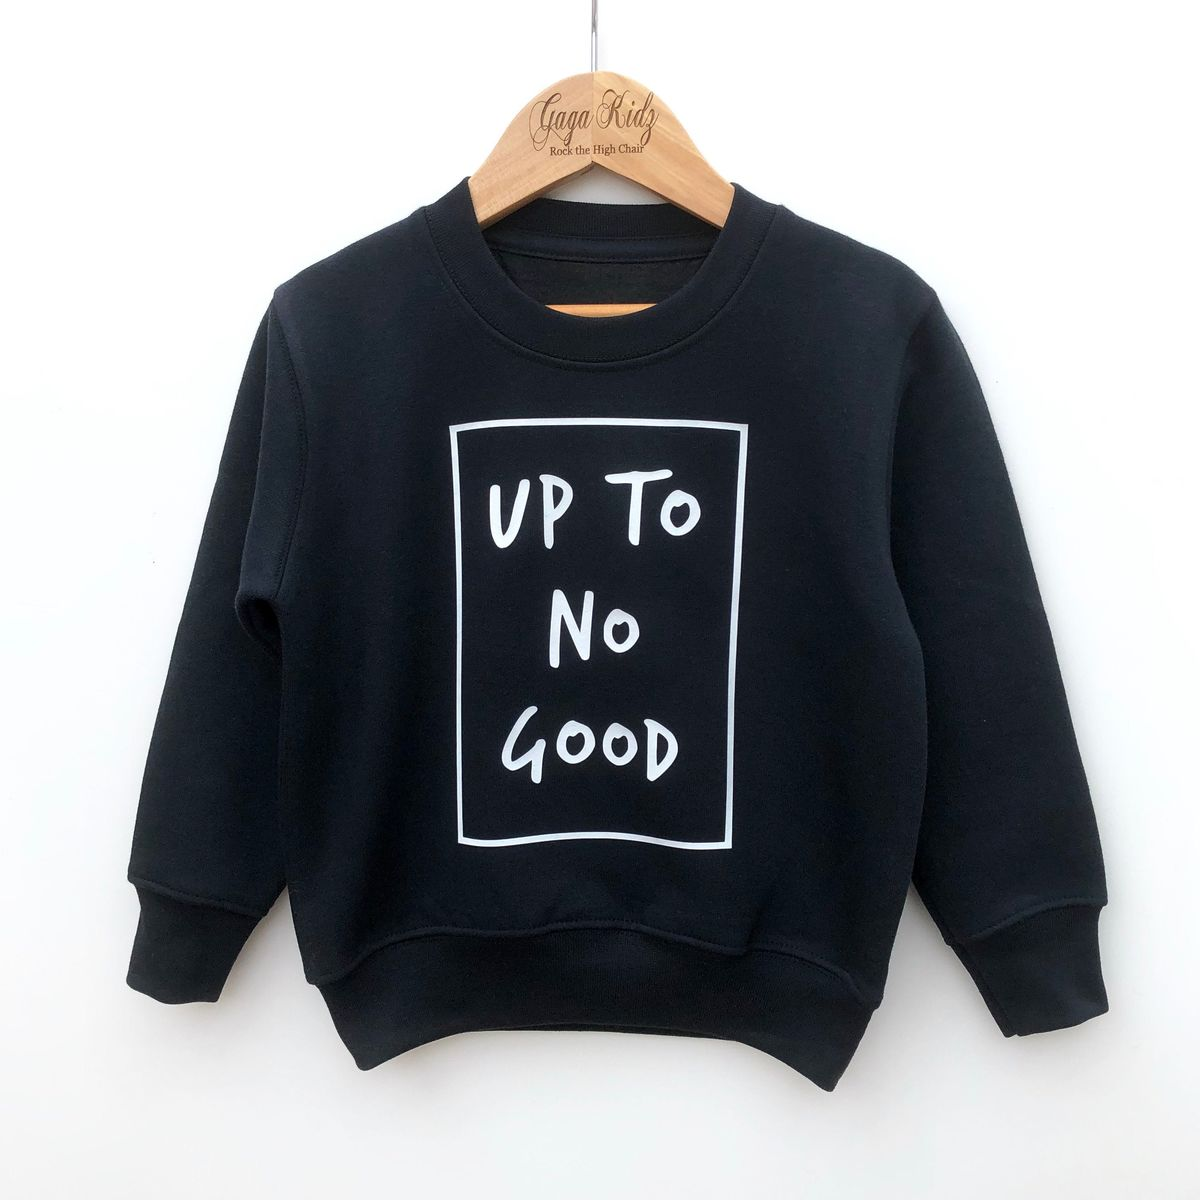 Up to no Good Sweatshirt - product images  of